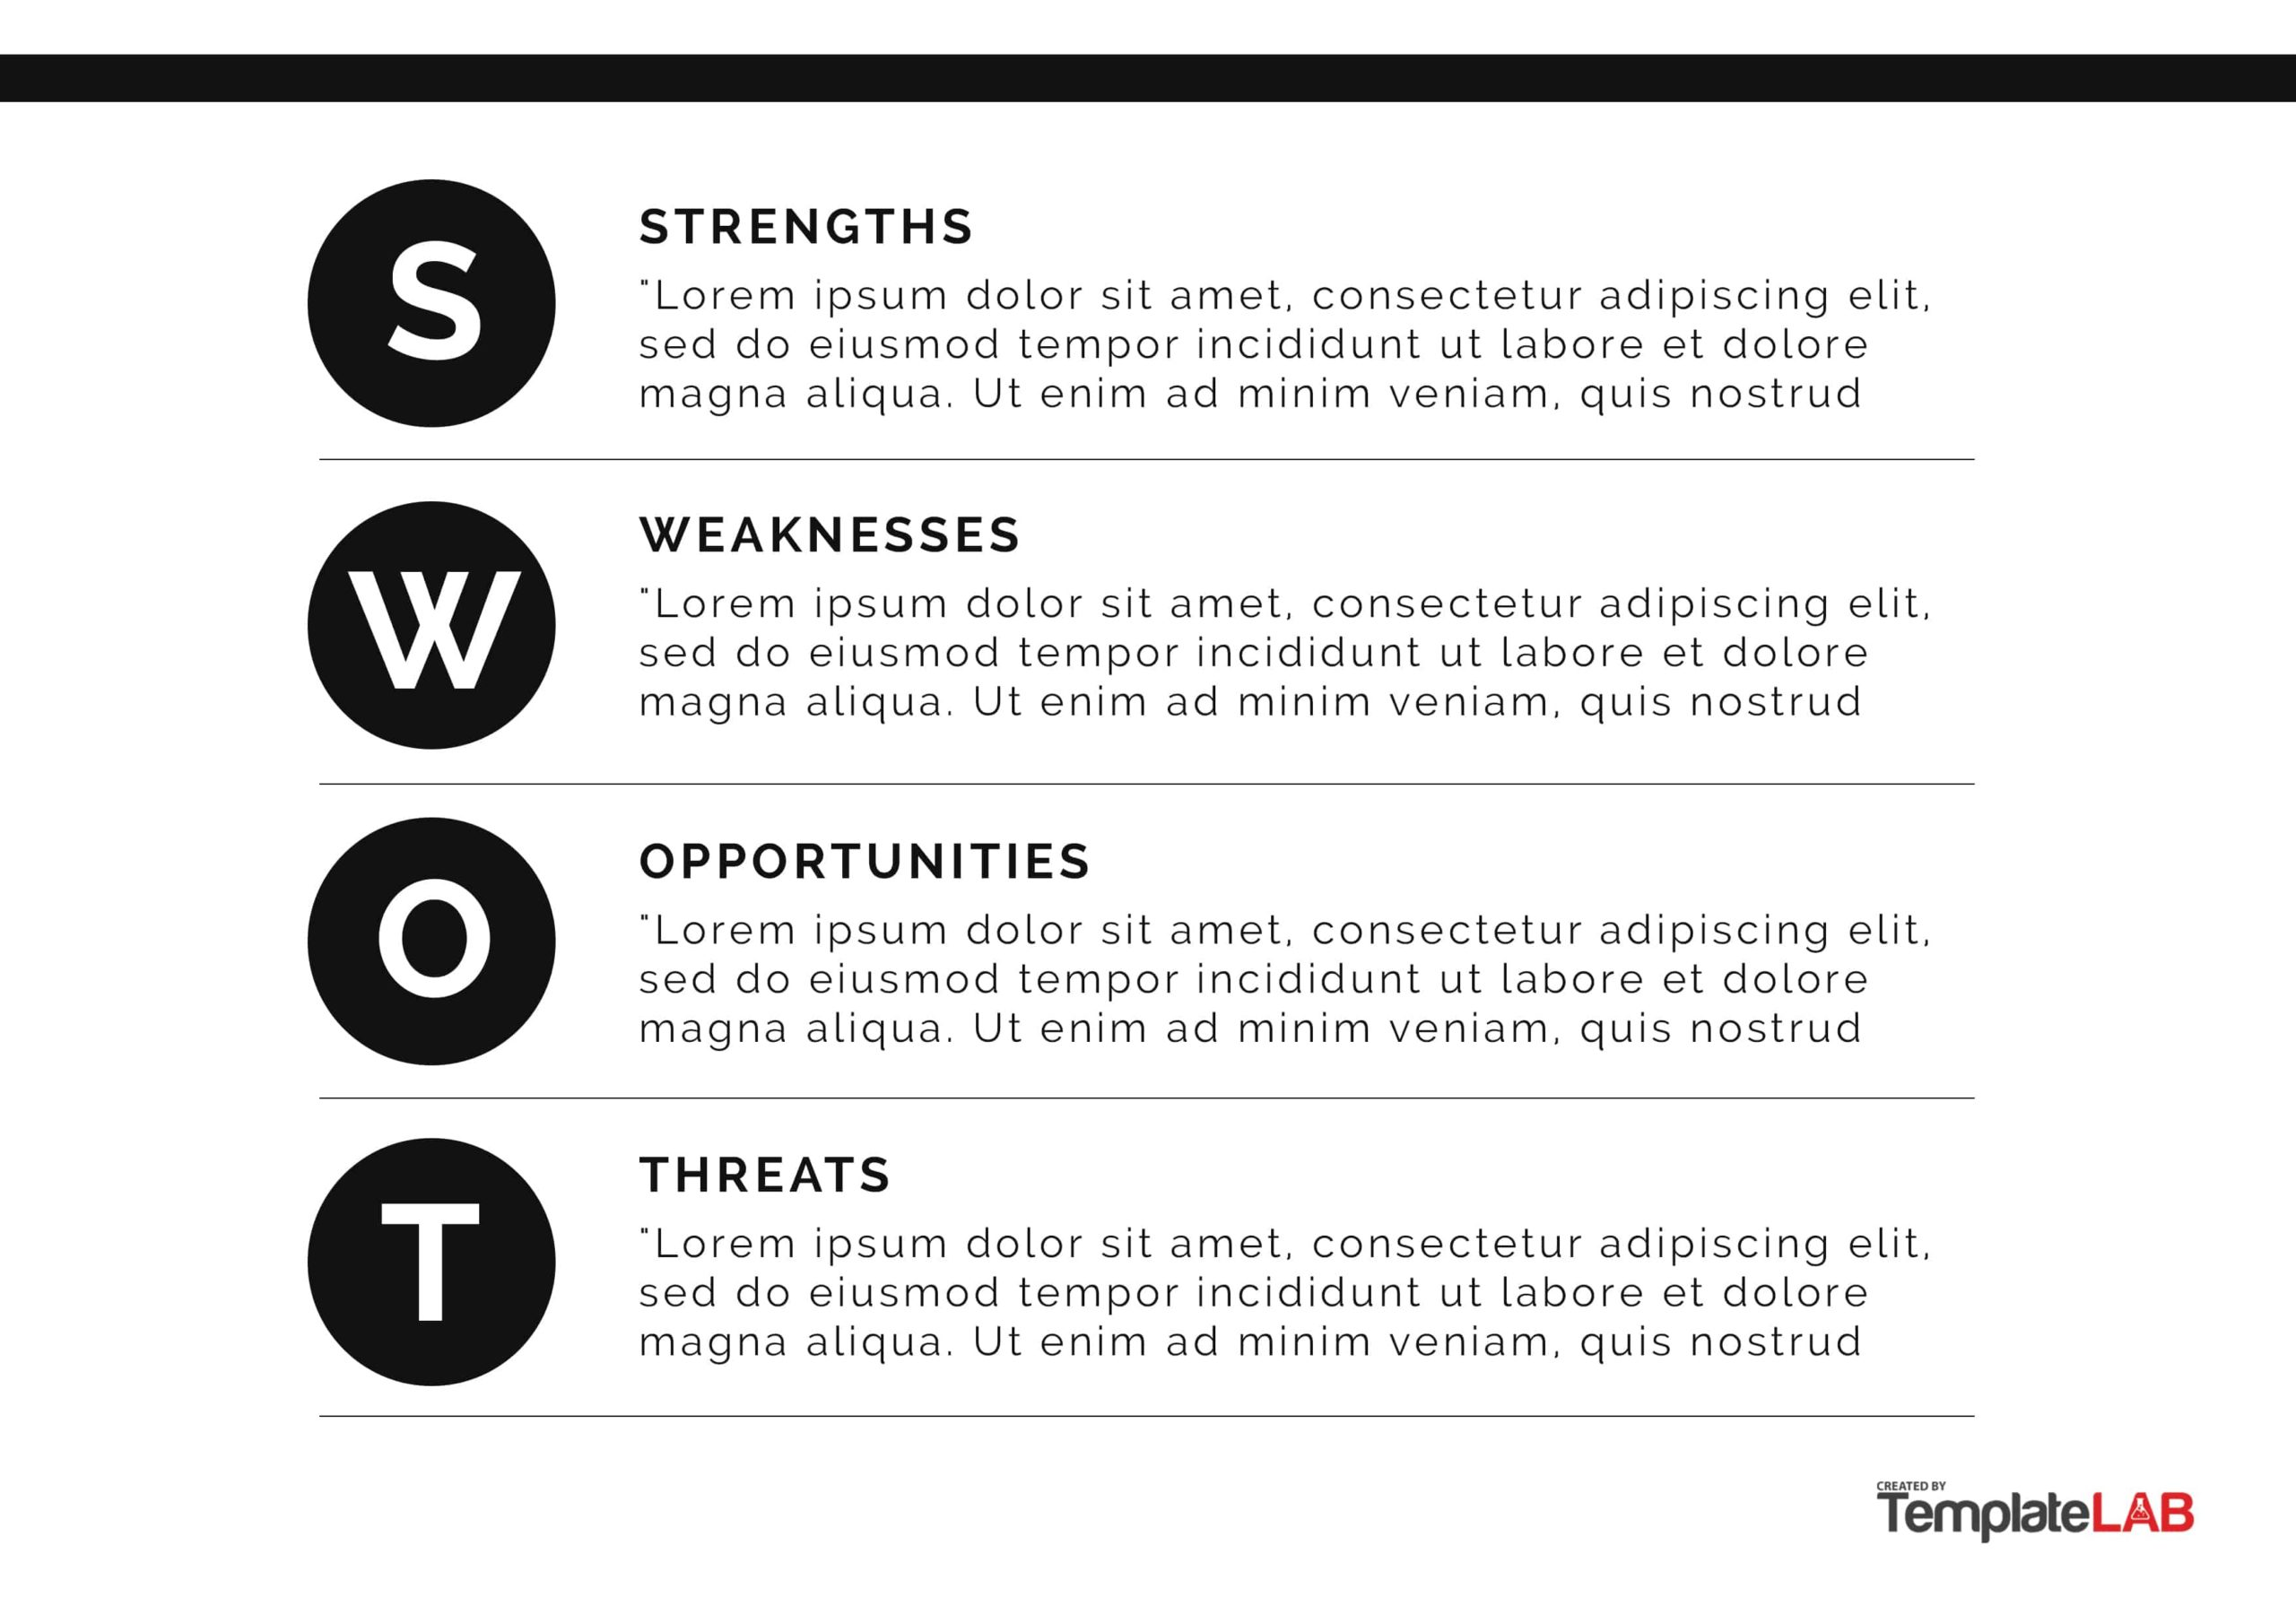 Free SWOT Analysis Template 05